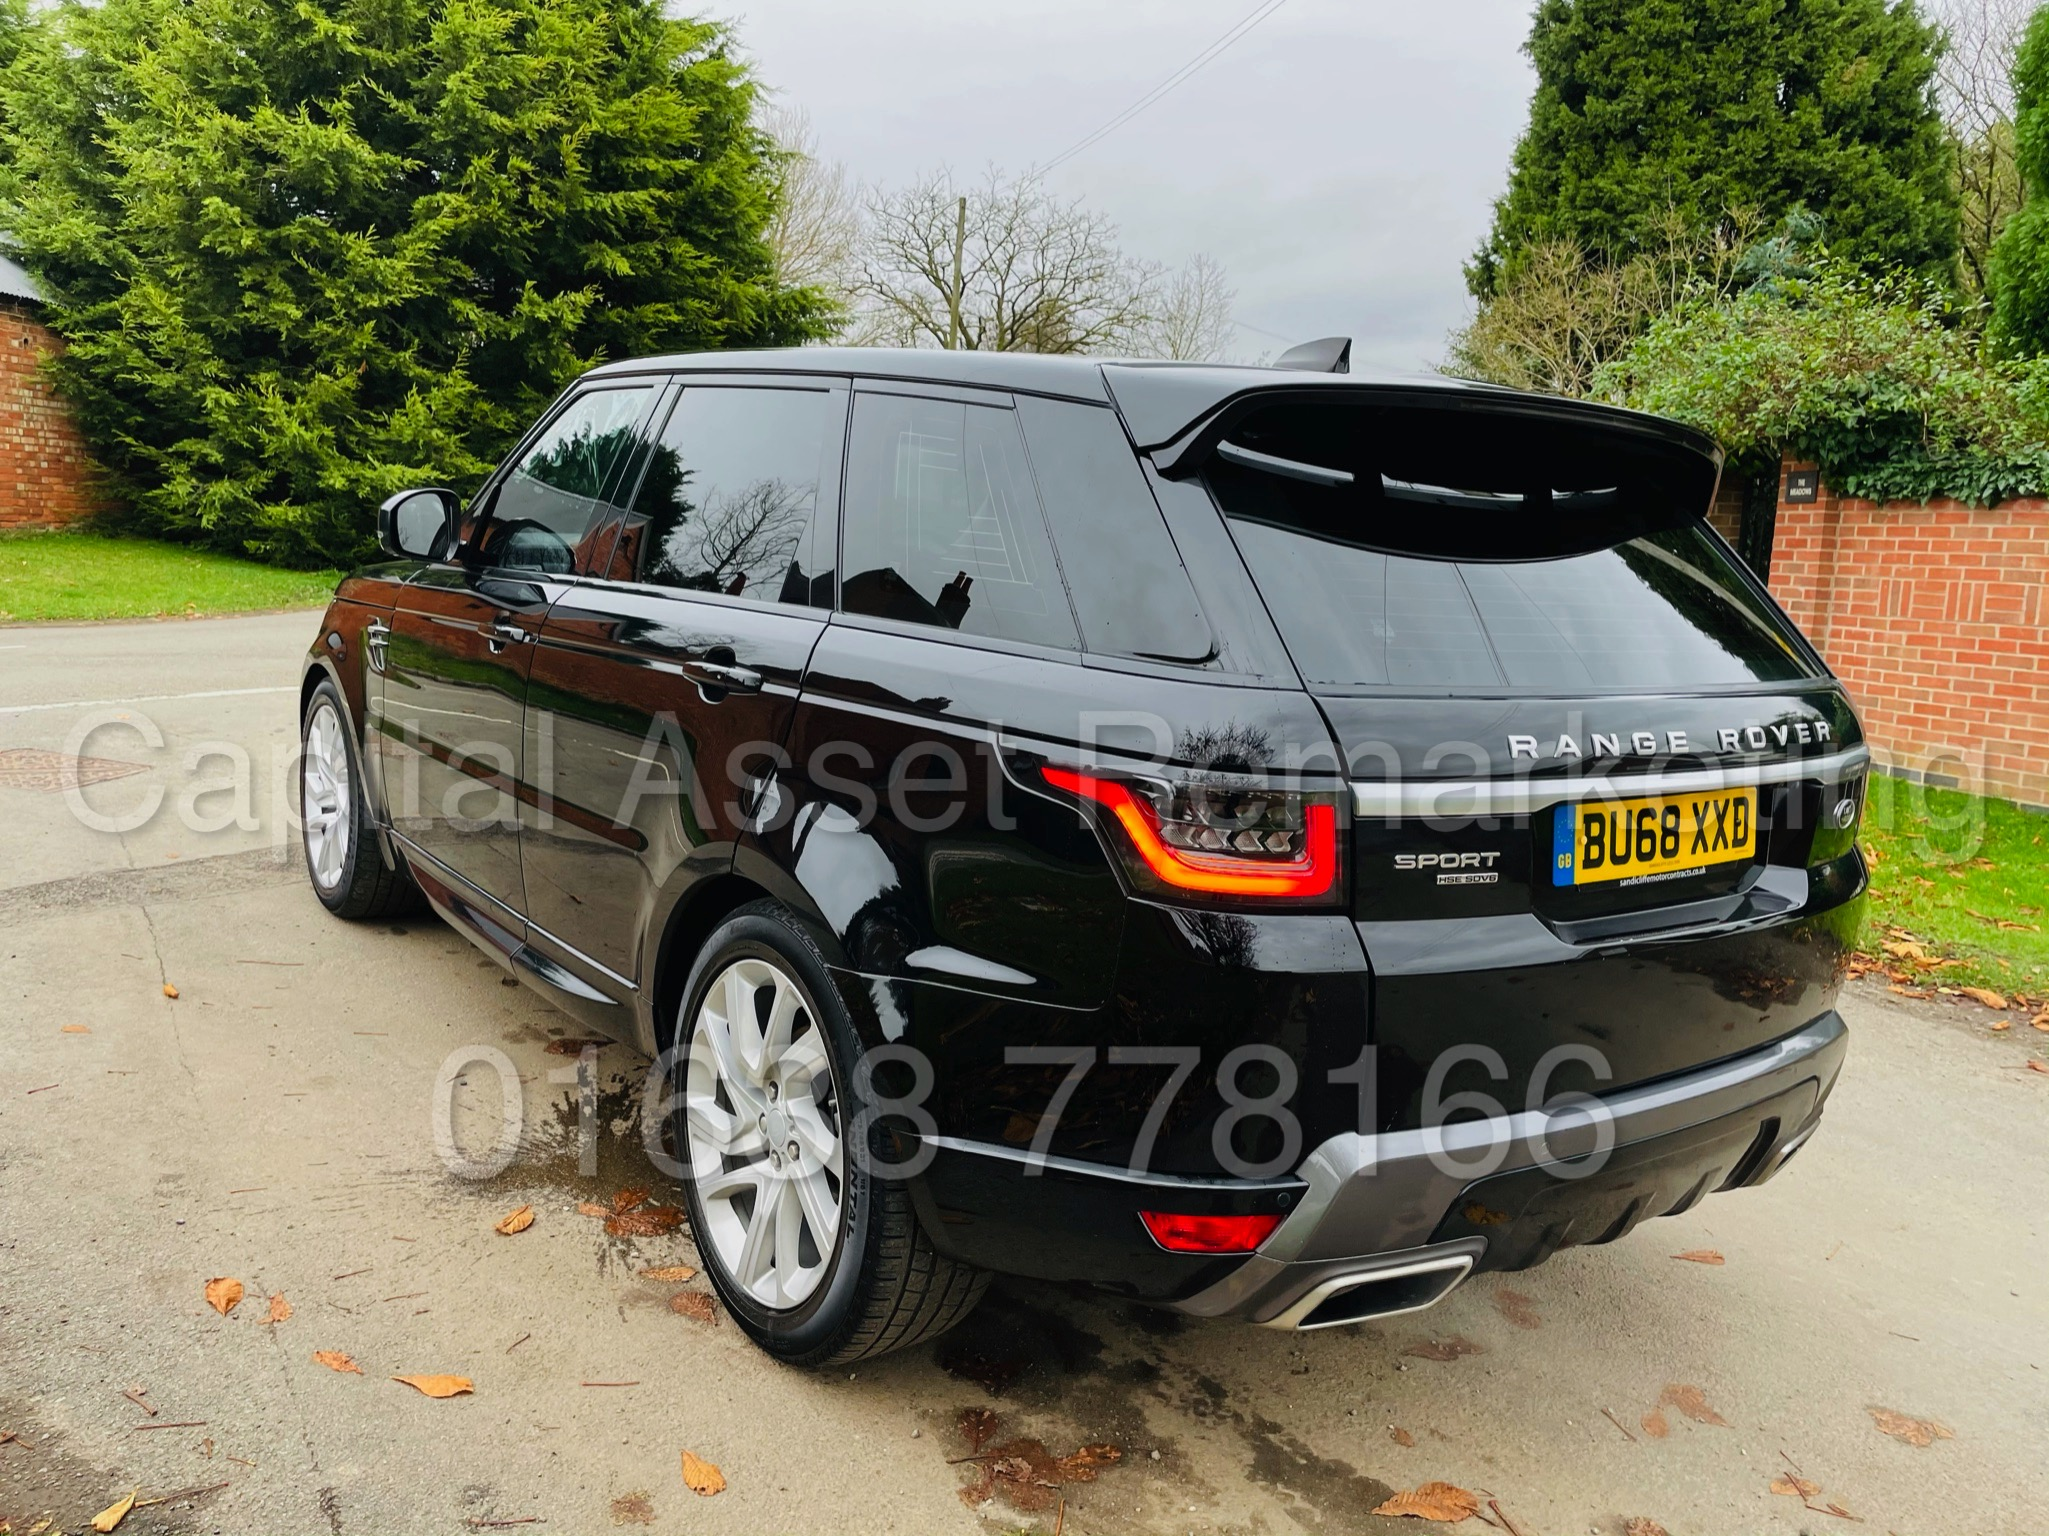 RANGE ROVER SPORT *HSE EDITION* SUV (2019 MODEL) '3.0 SDV6 - 306 BHP - 8 SPEED AUTO' *FULLY LOADED* - Image 10 of 56